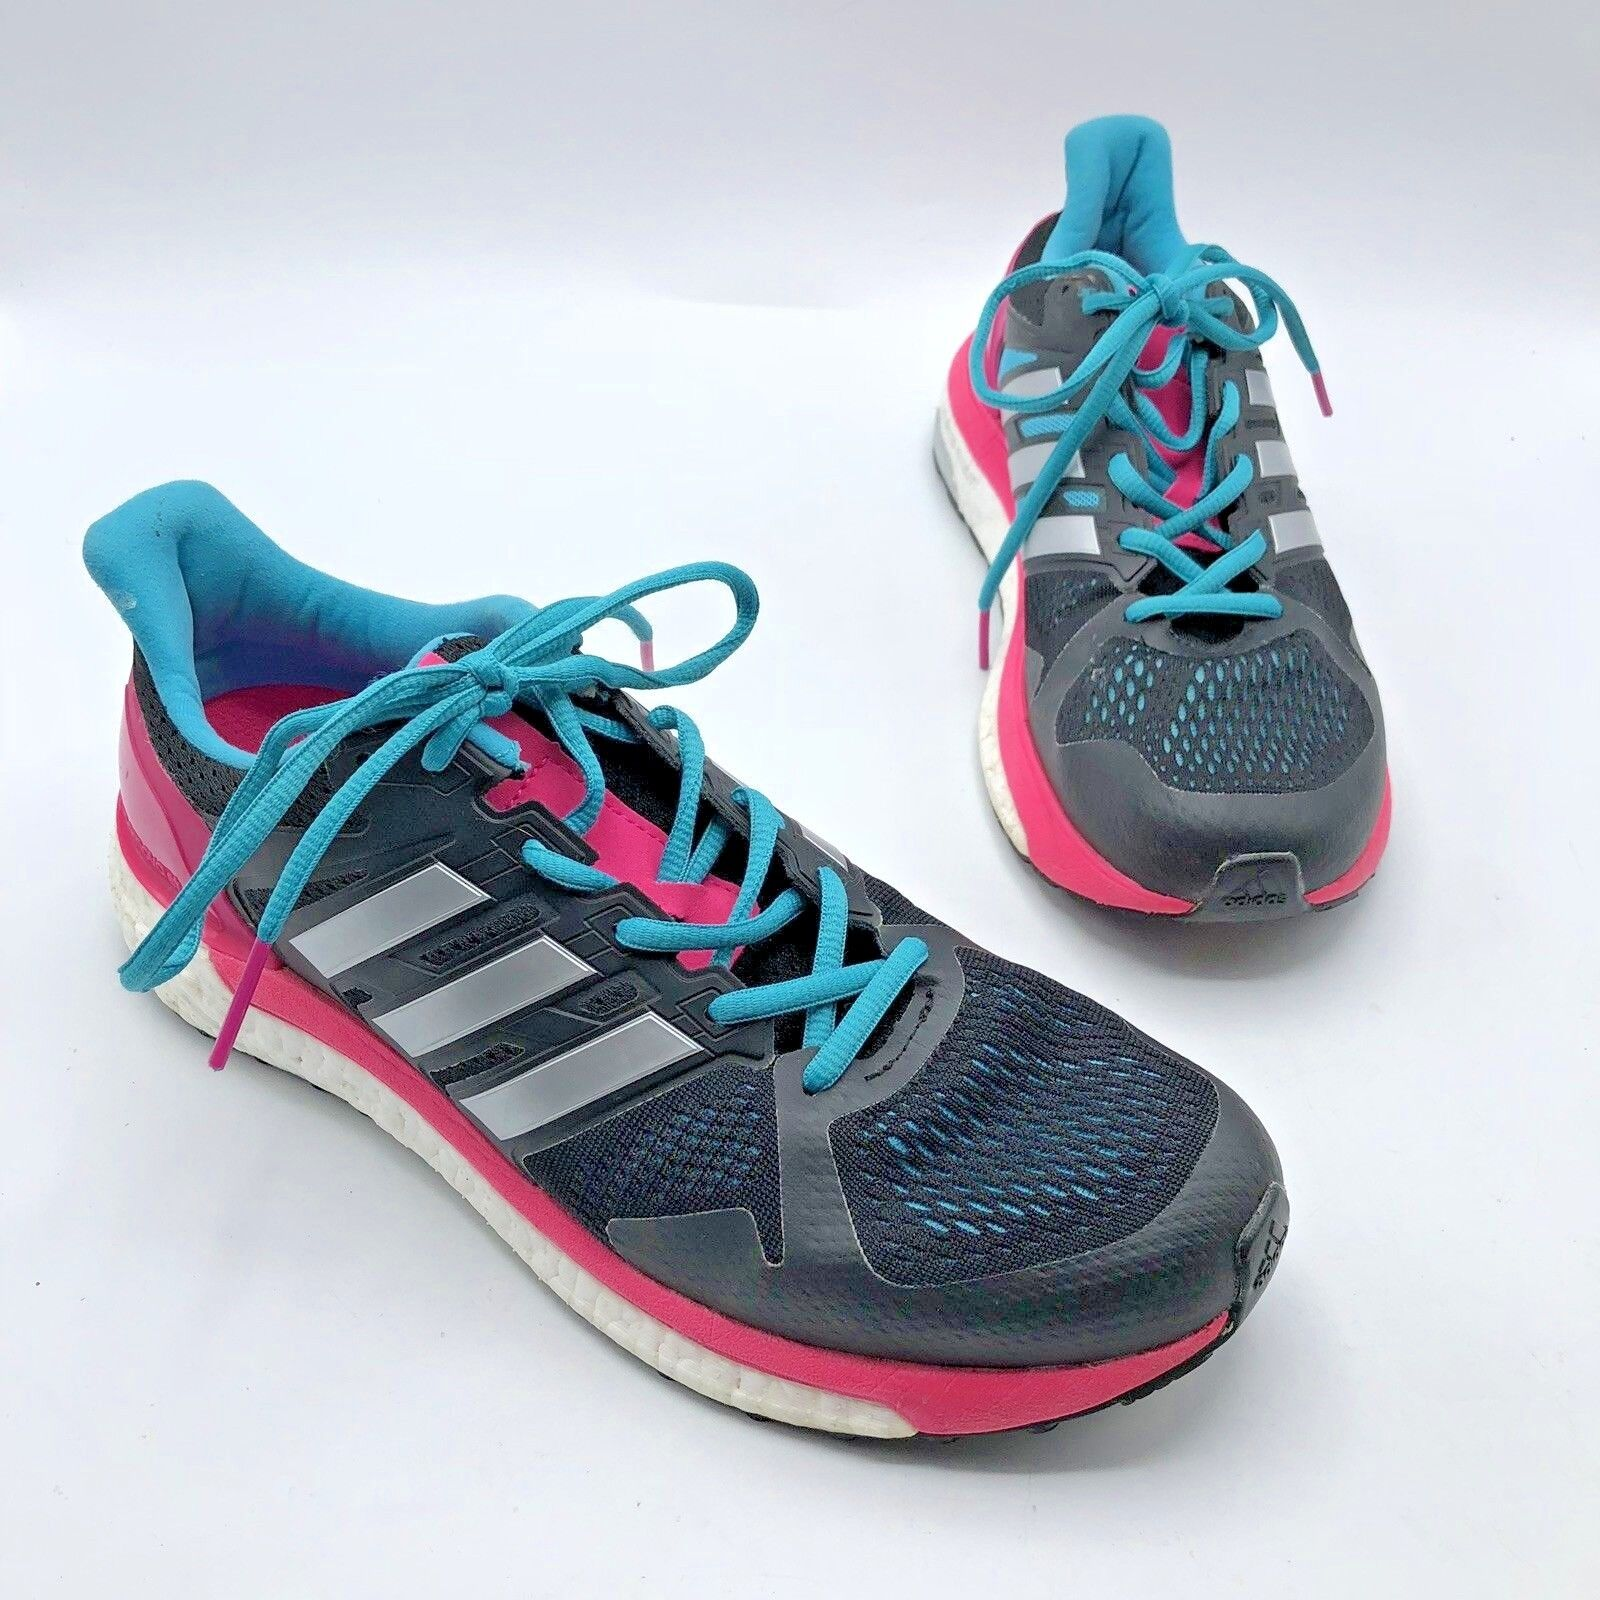 ADIDAS Supernova ST Women Black Pink Running shoes Size 9.5M Pre Owned